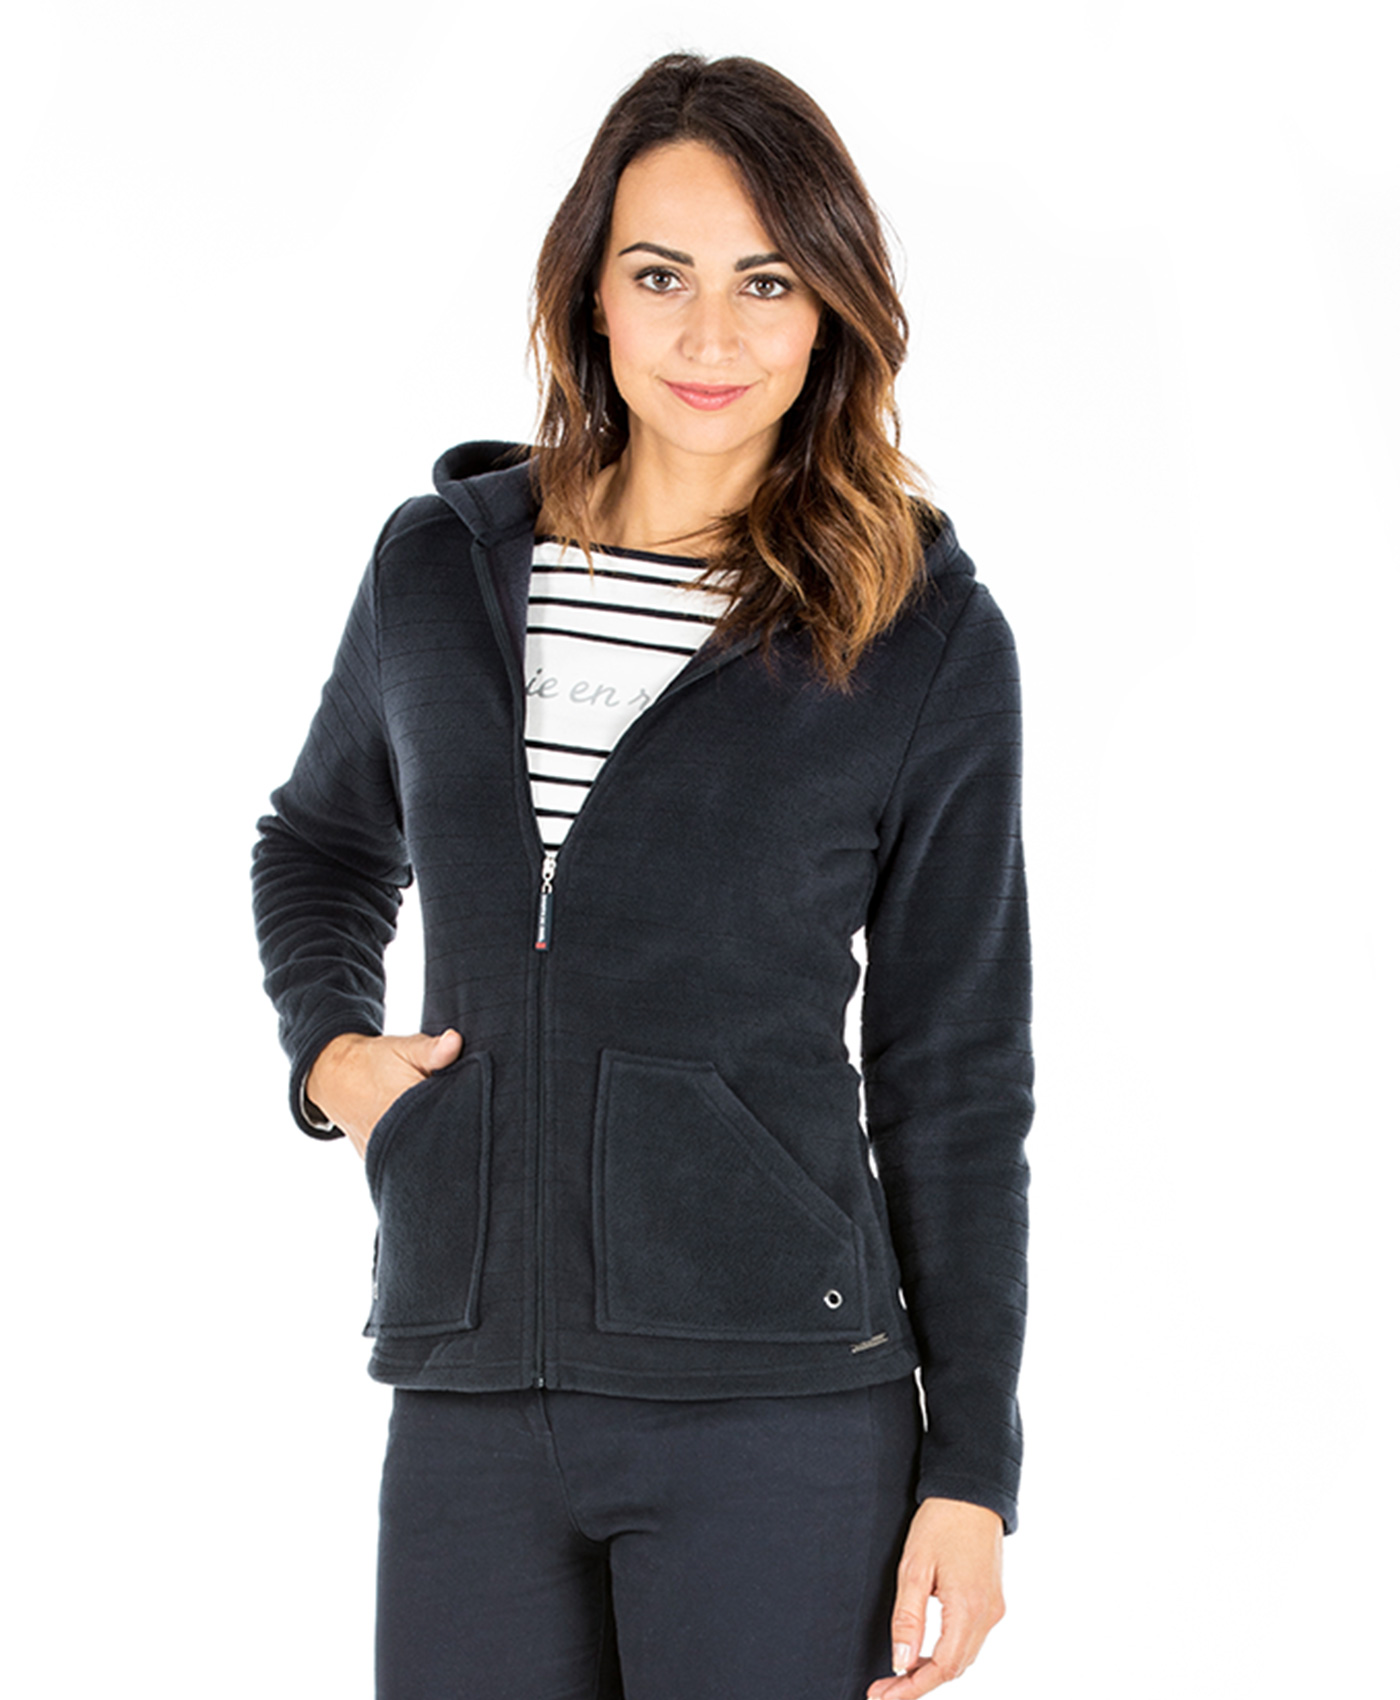 Polaire femme - Mode marine Promotions